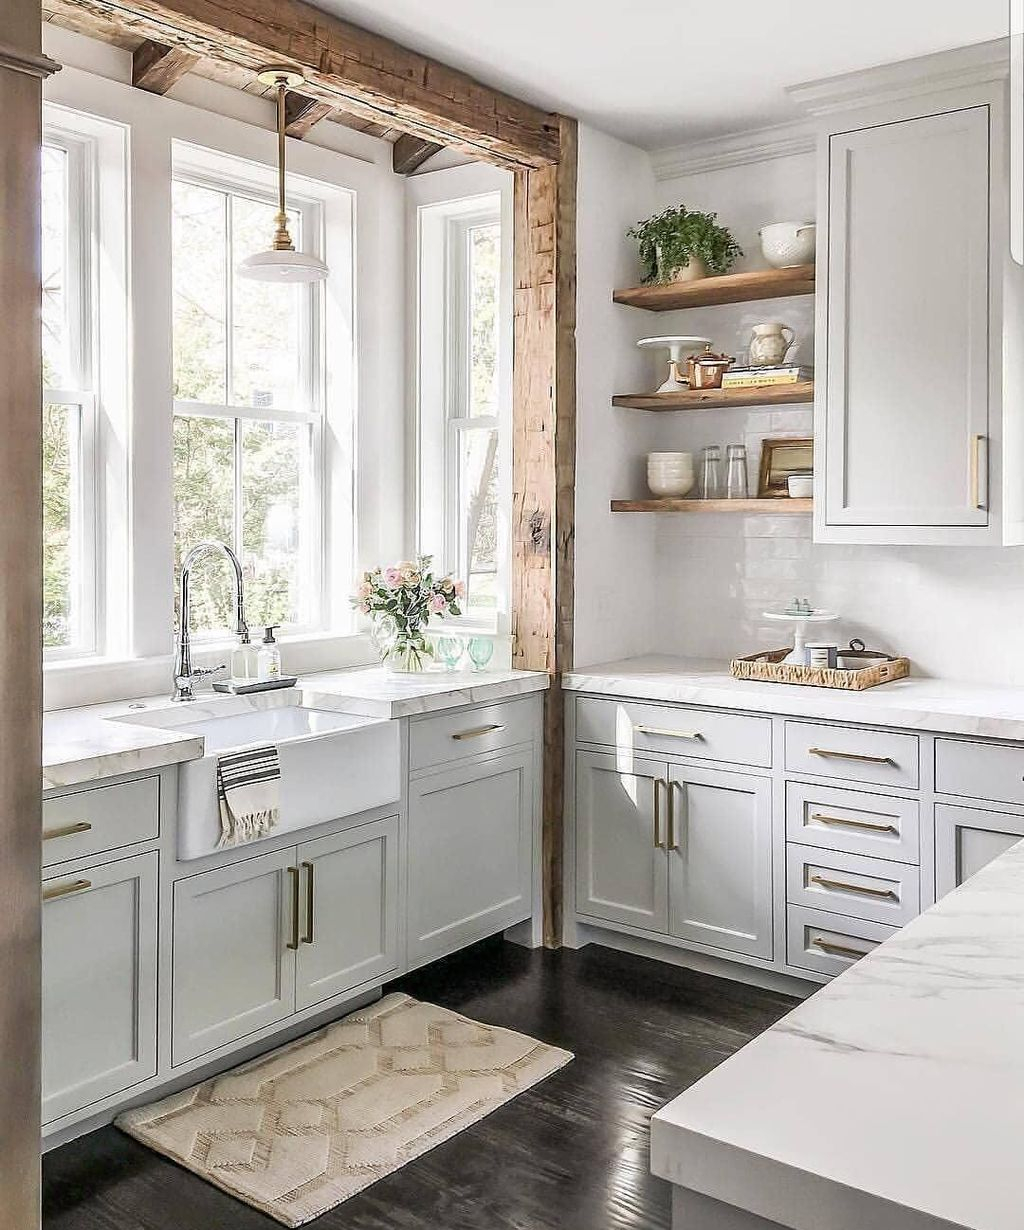 Cool Diy Kitchen Design Ideas You Will Definitely Want To Keep 02